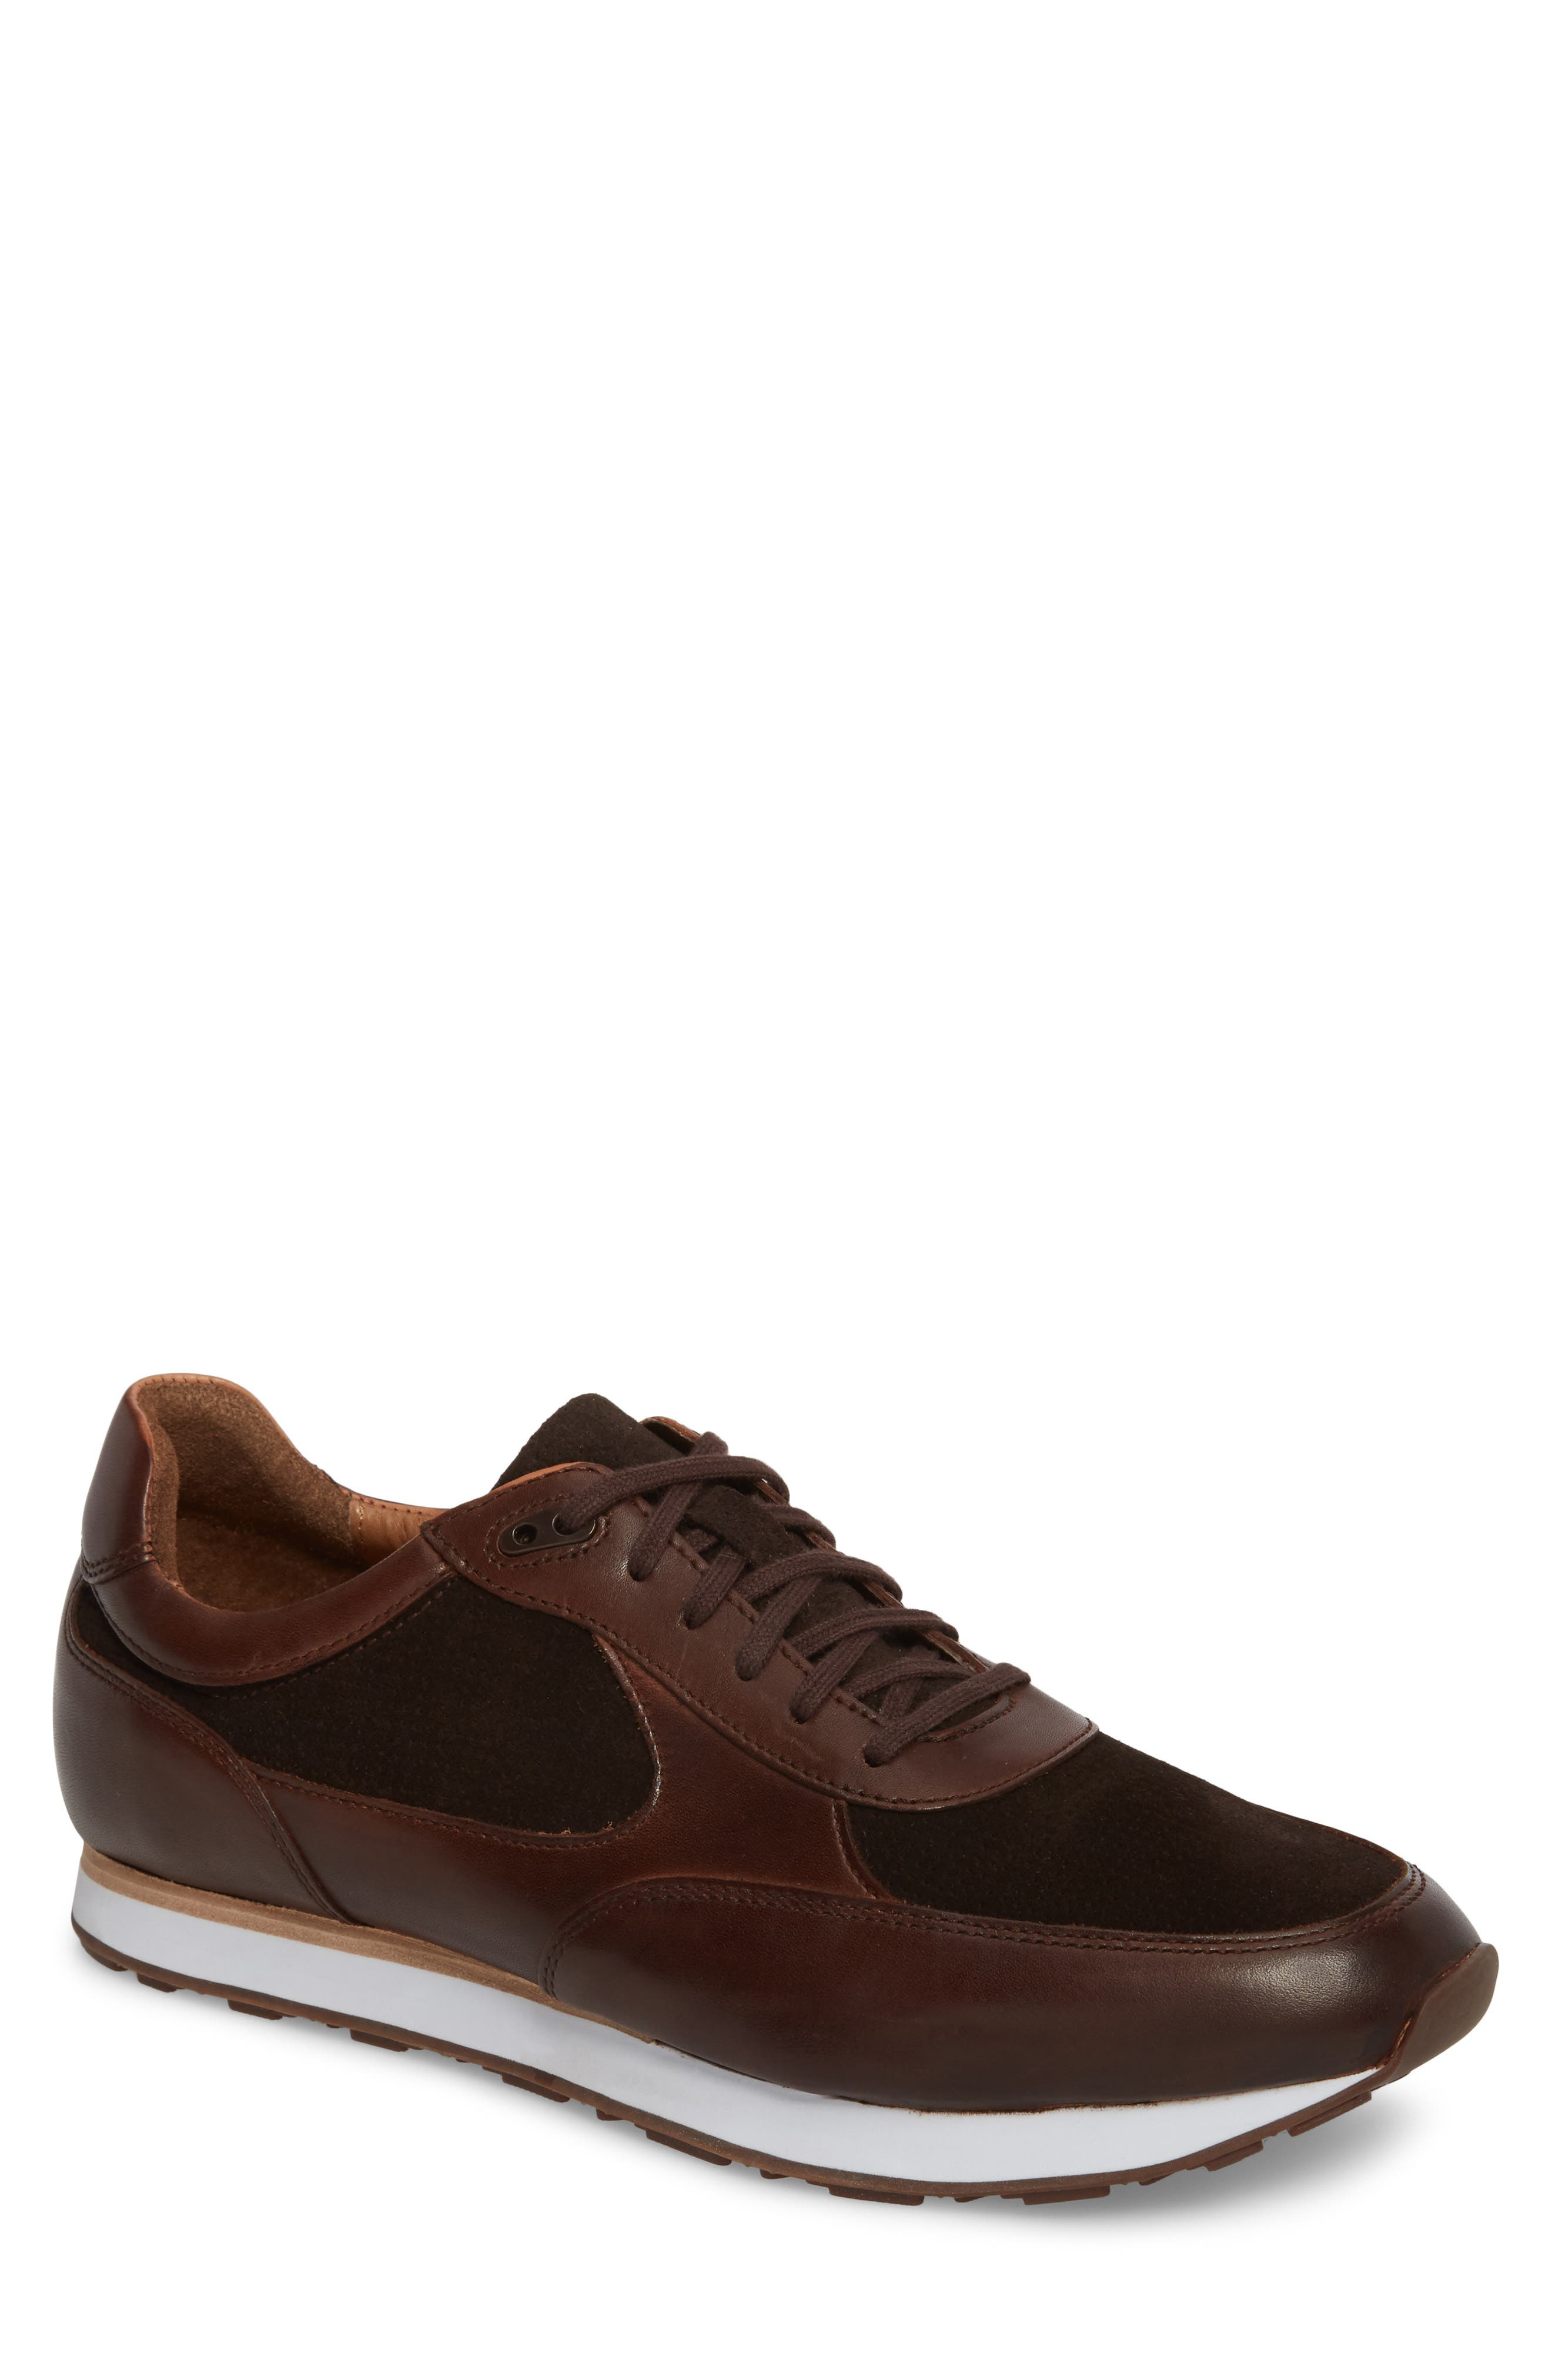 Malek Low Top Sneaker,                         Main,                         color, Mahogany Leather/ Suede